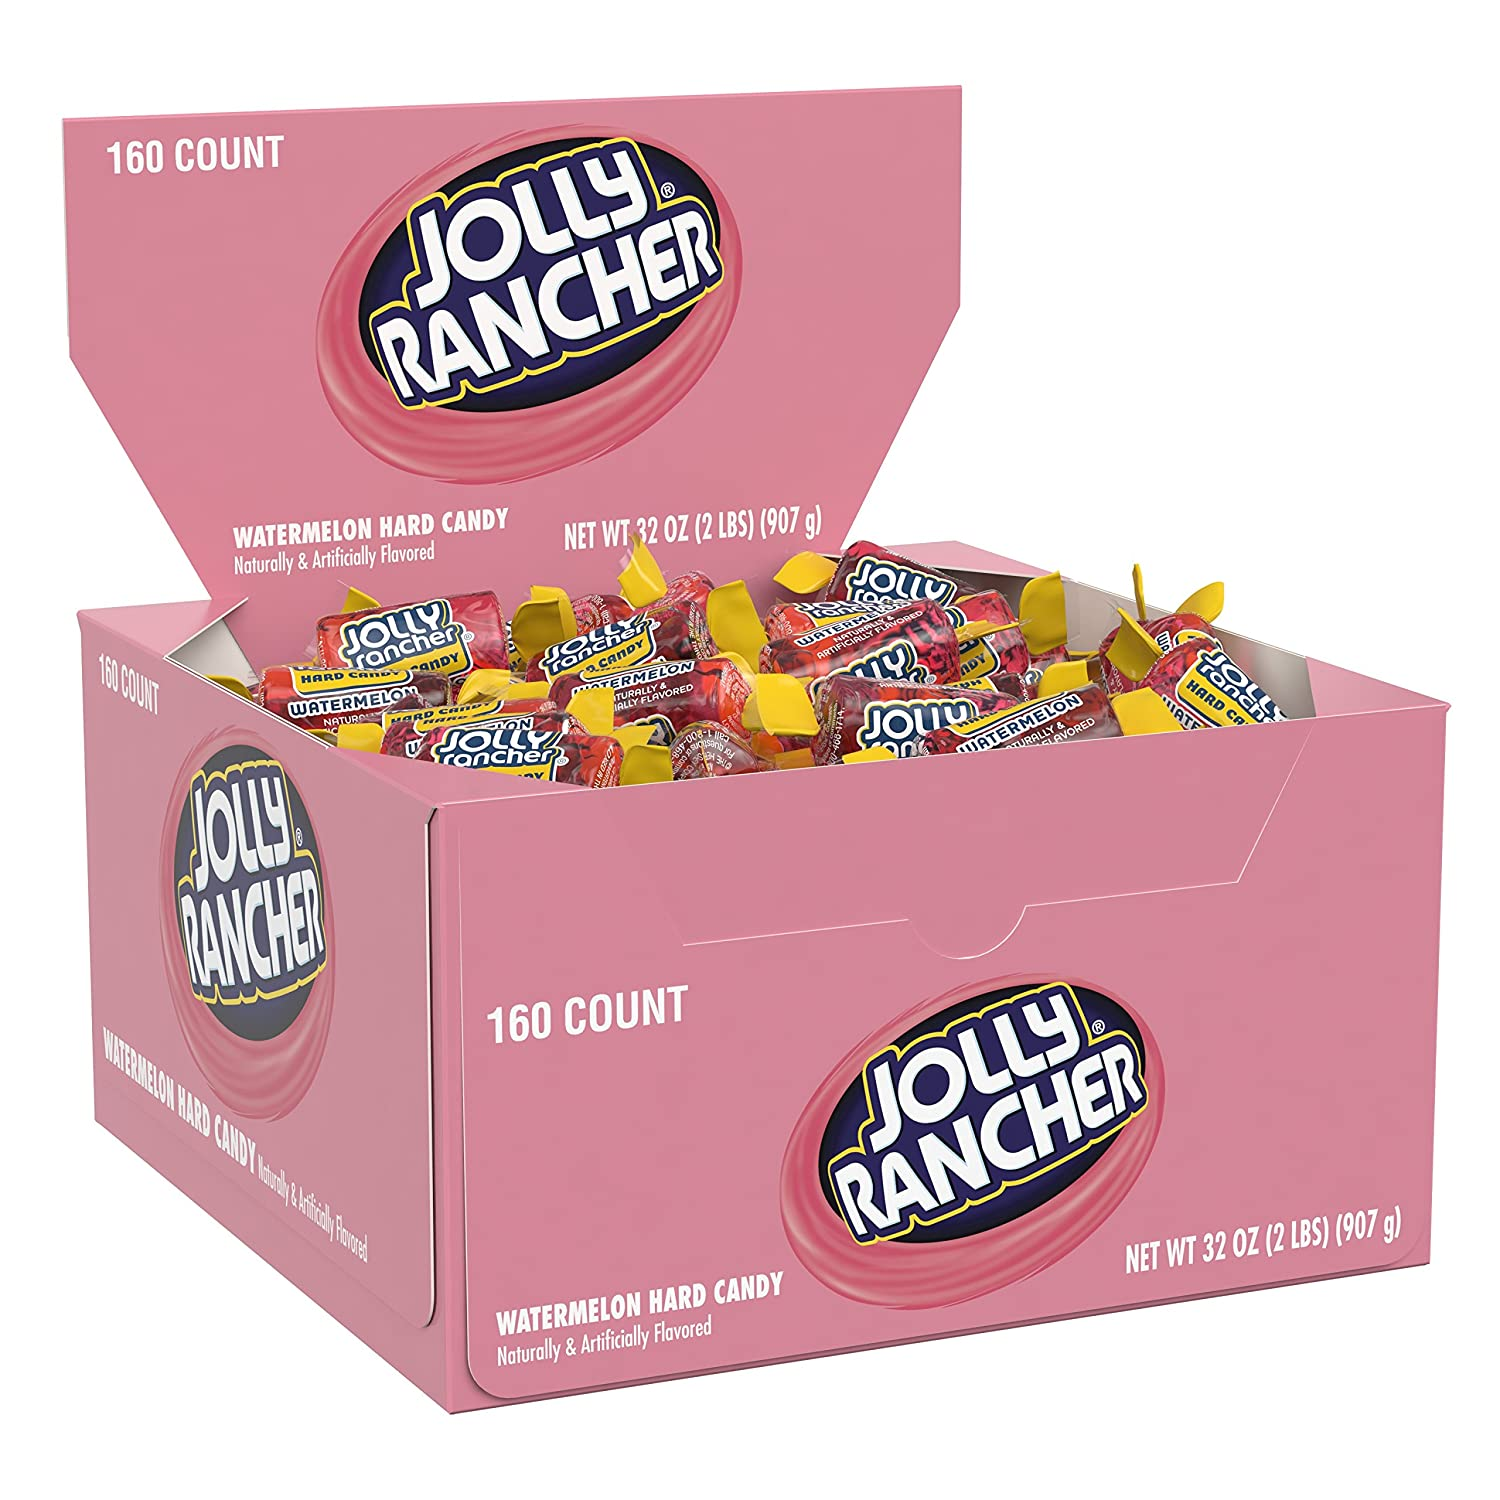 JOLLY RANCHER Hard Candy, Watermelon, 160 Count